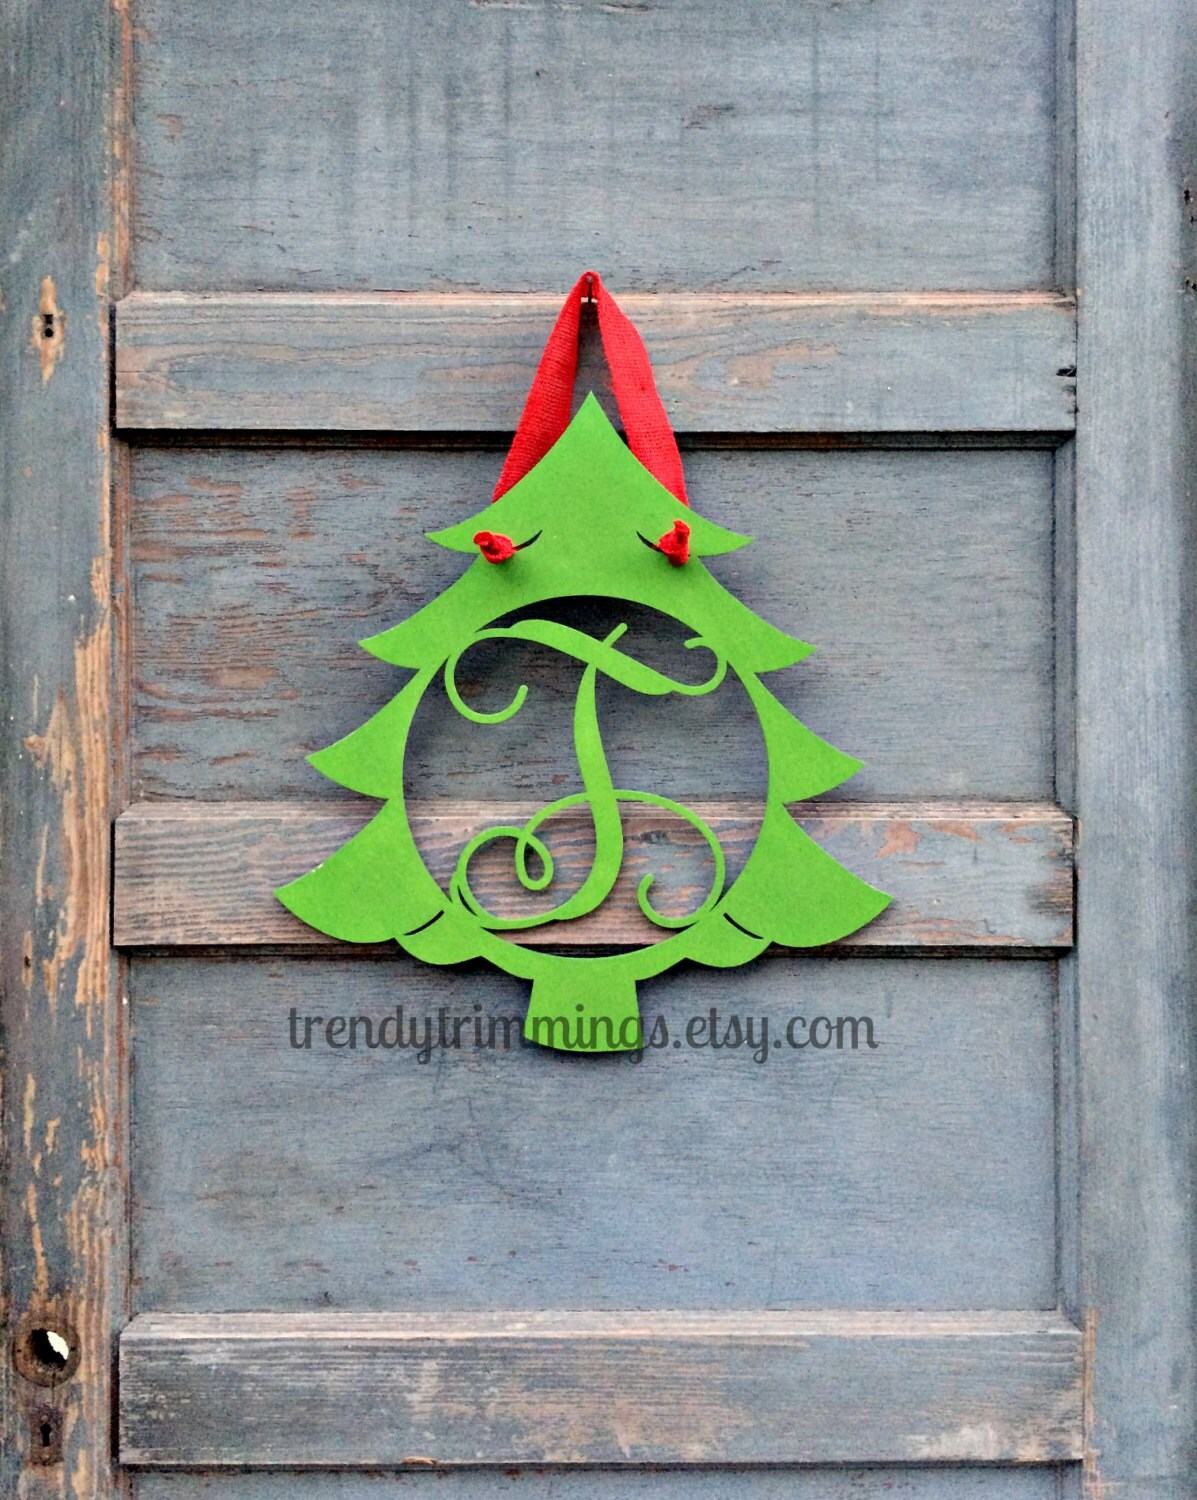 Christmas Tree Monogram- Holiday Trimmings™ Wooden Monogram Letter- Interlocking Script, Door Hanger Wreath- Christmas, winter holiday decor